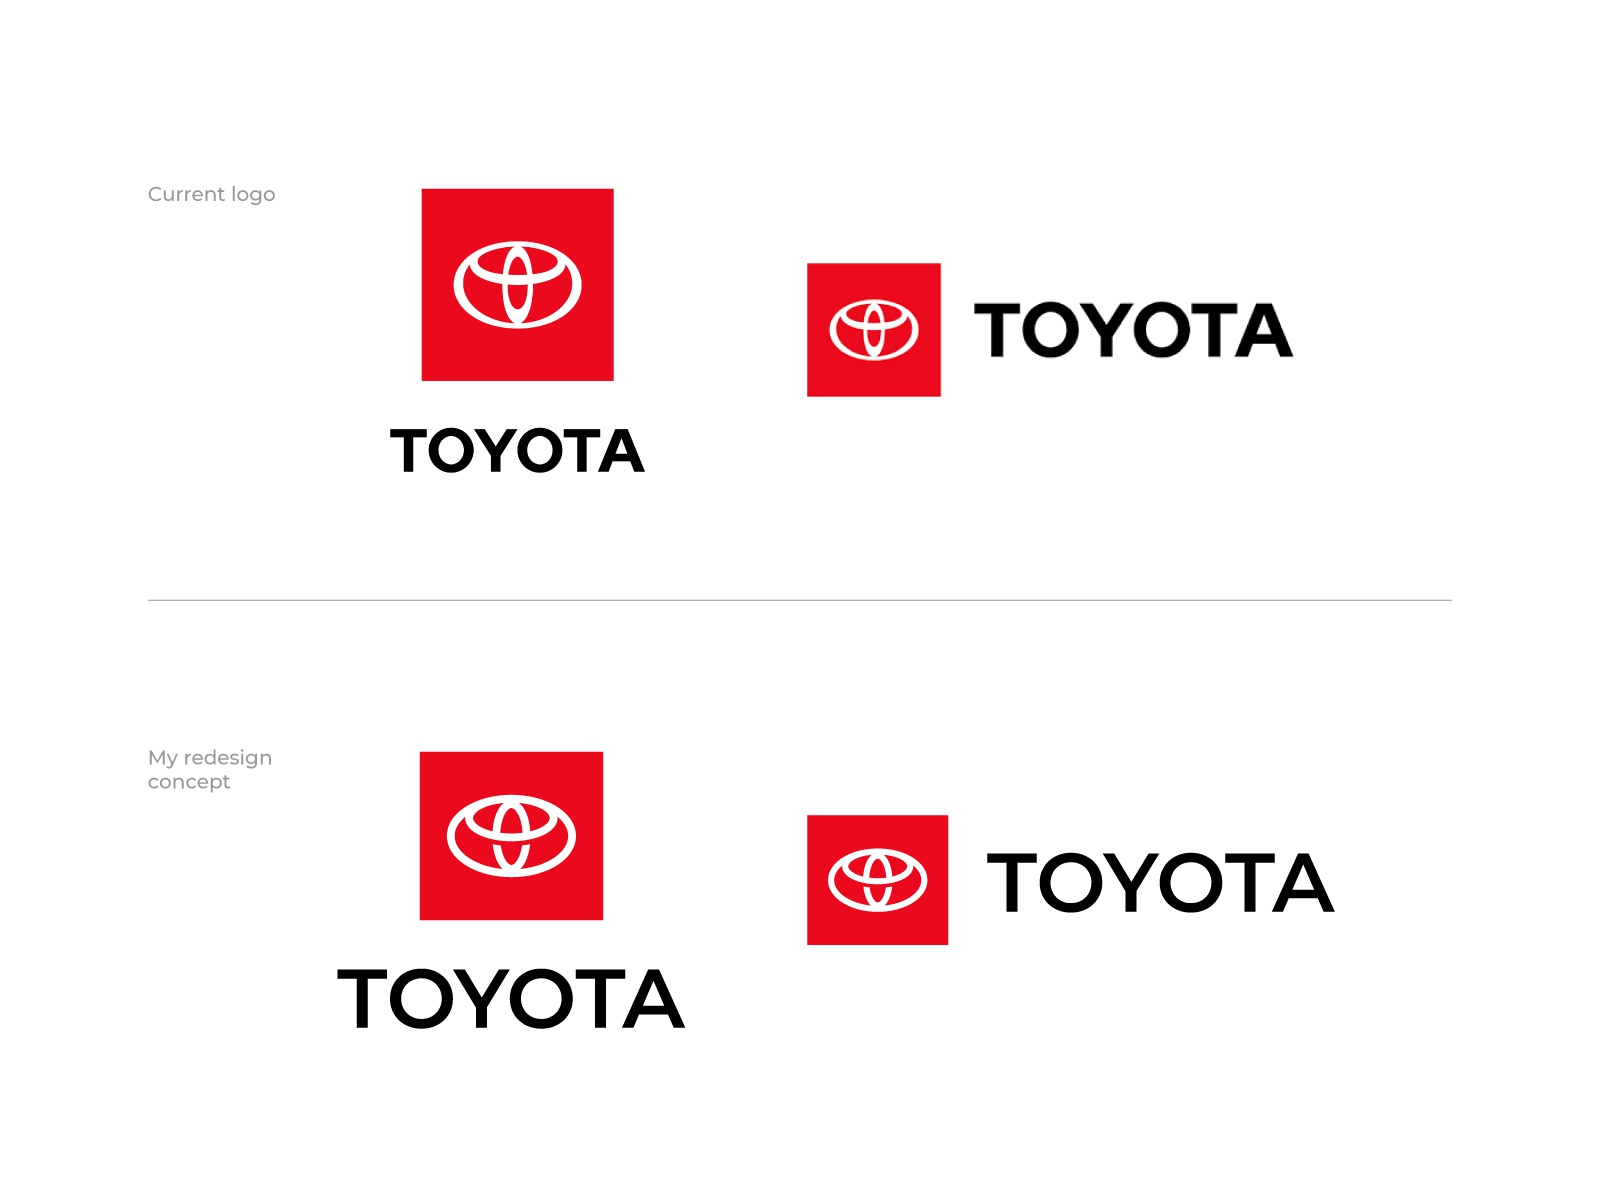 Toyota- Famous logos with hidden meanings